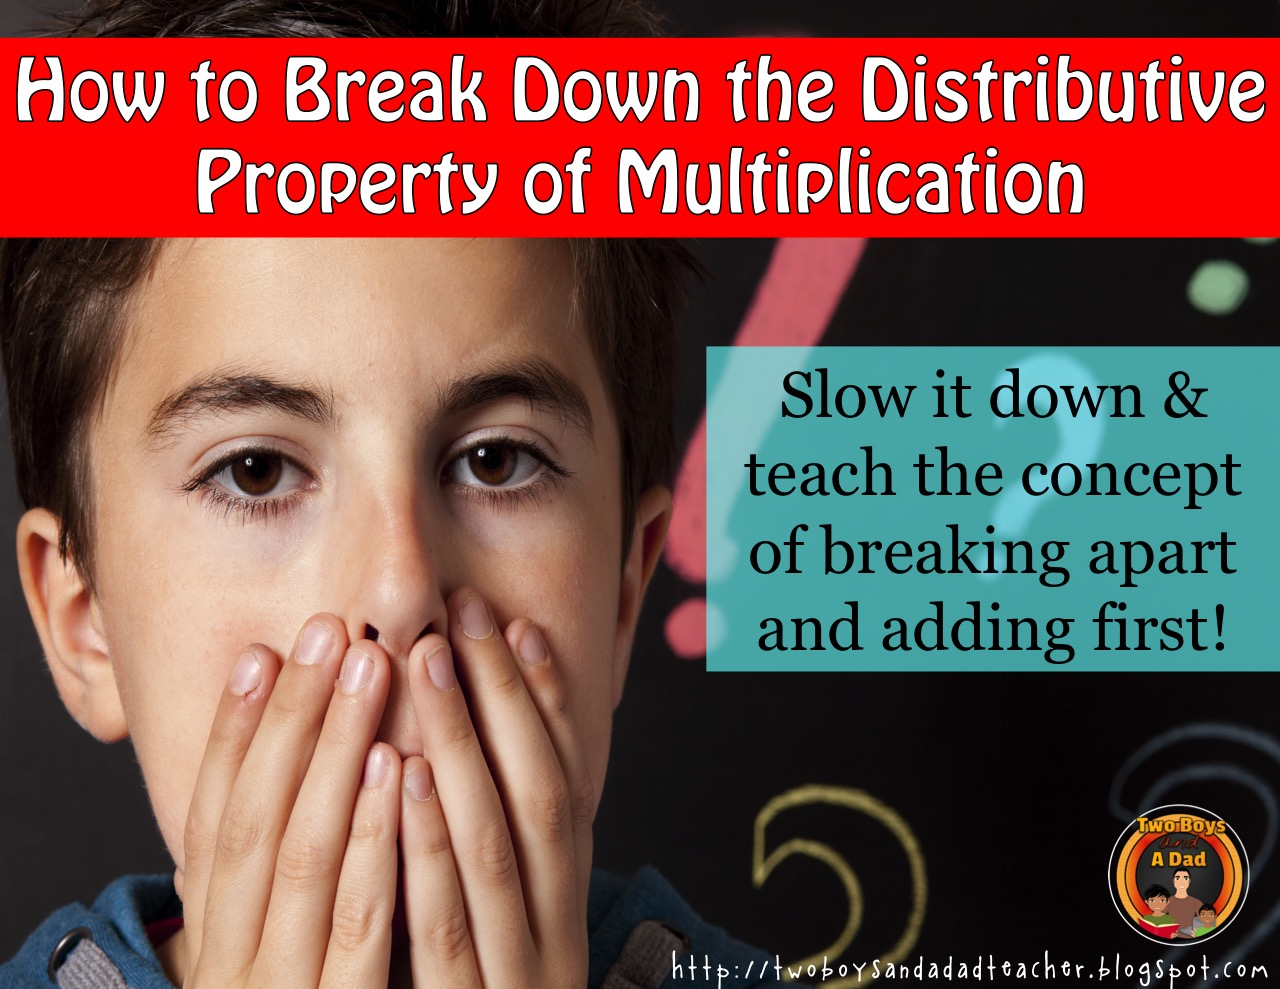 Slow down to teach the concept